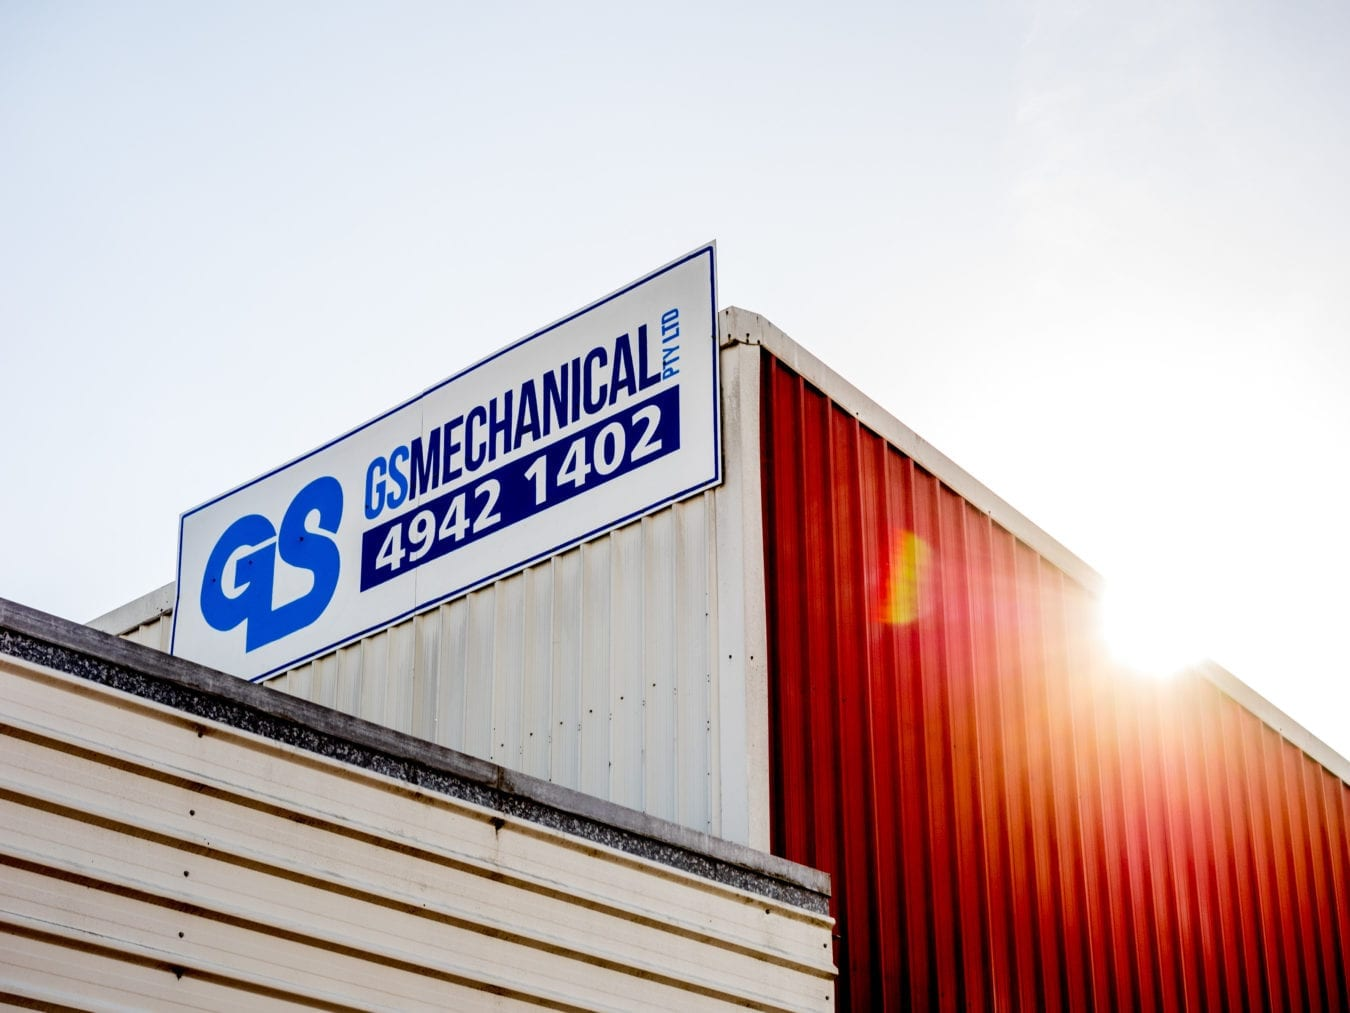 GS Mechanical In Whitebridge NSW